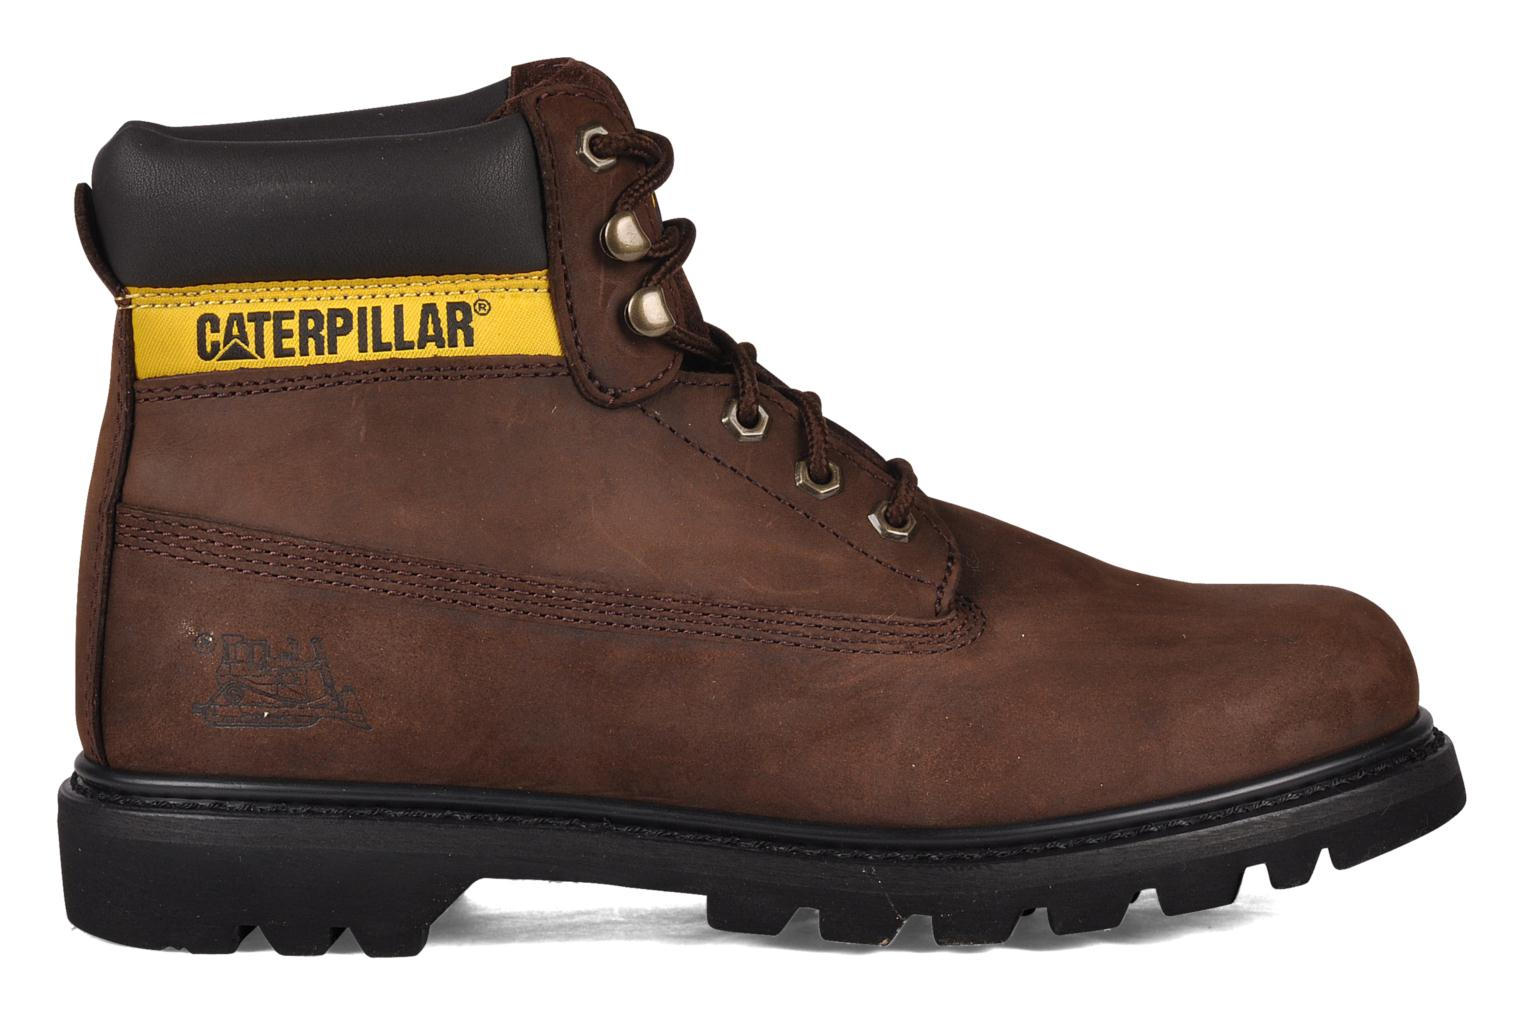 Bottines et boots Caterpillar Colorado Marron vue derrière